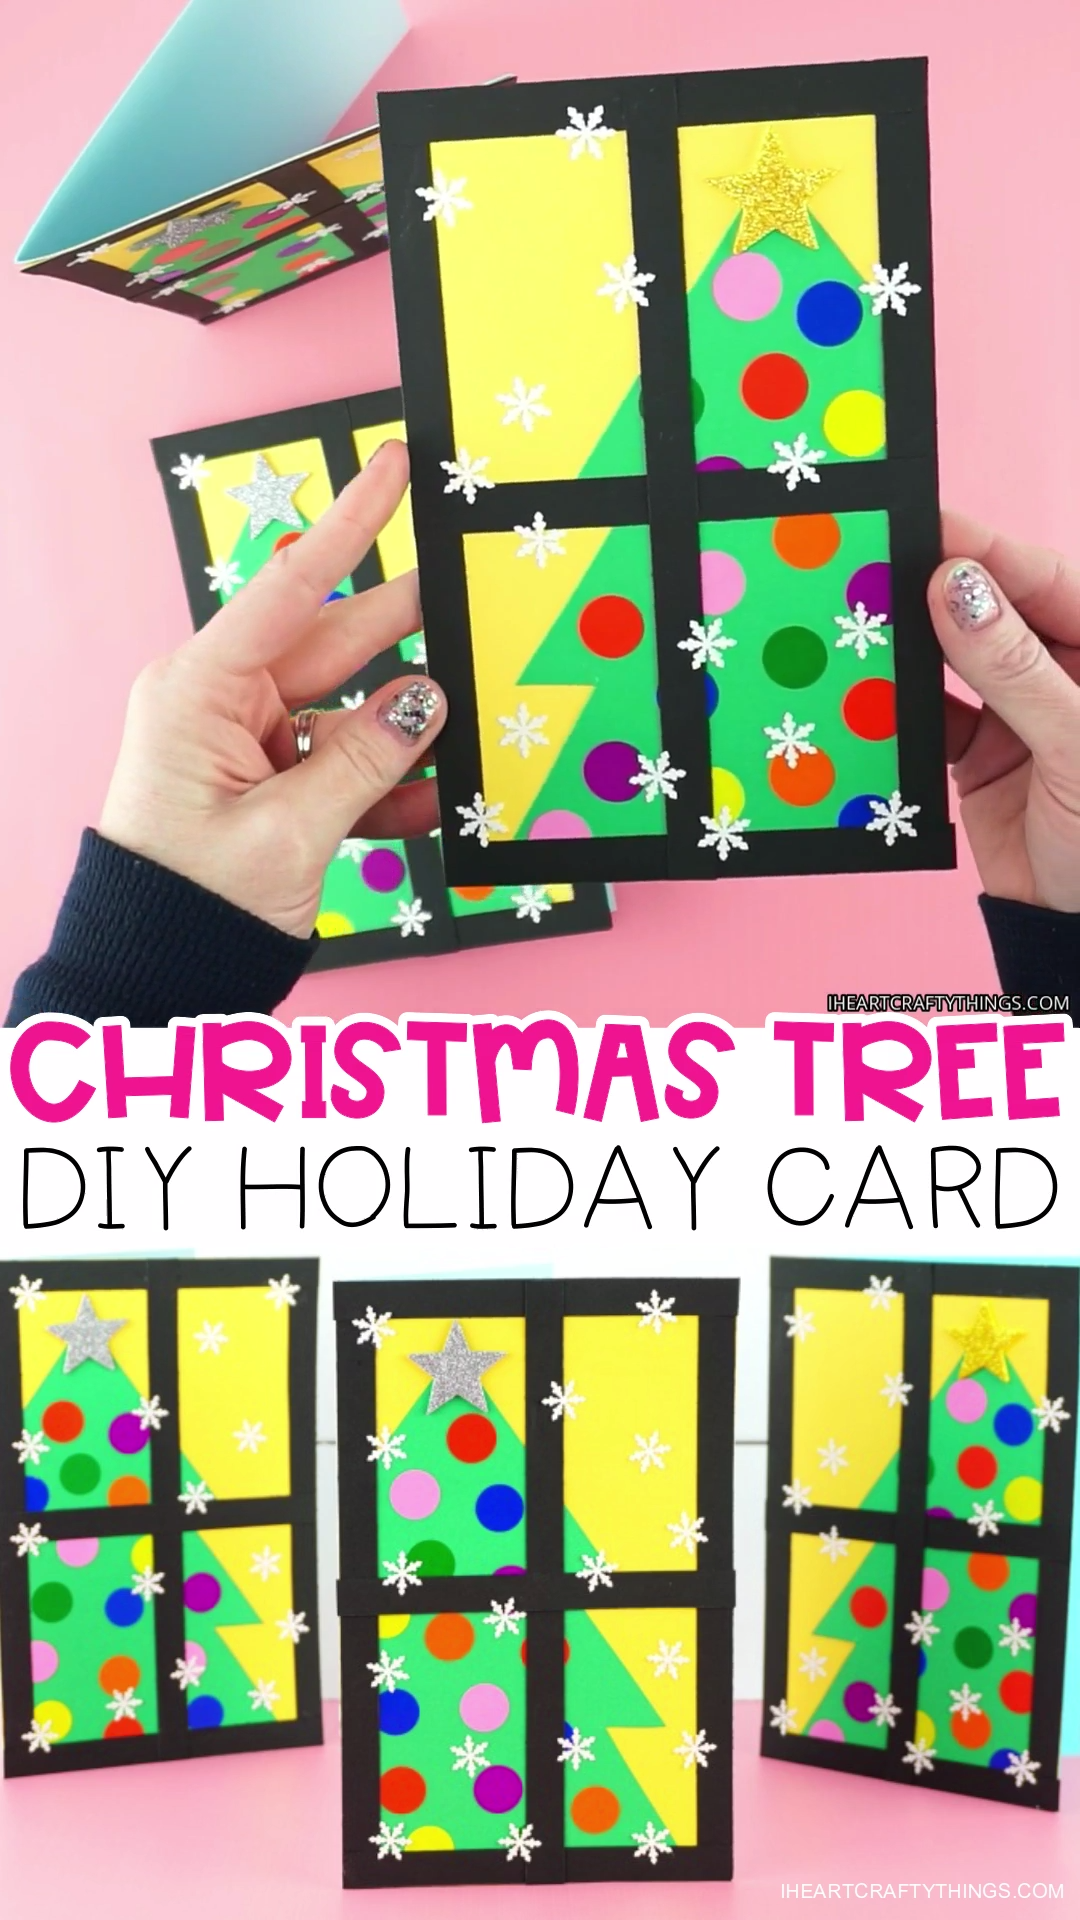 How to Make a Gorgeous Christmas Tree Card